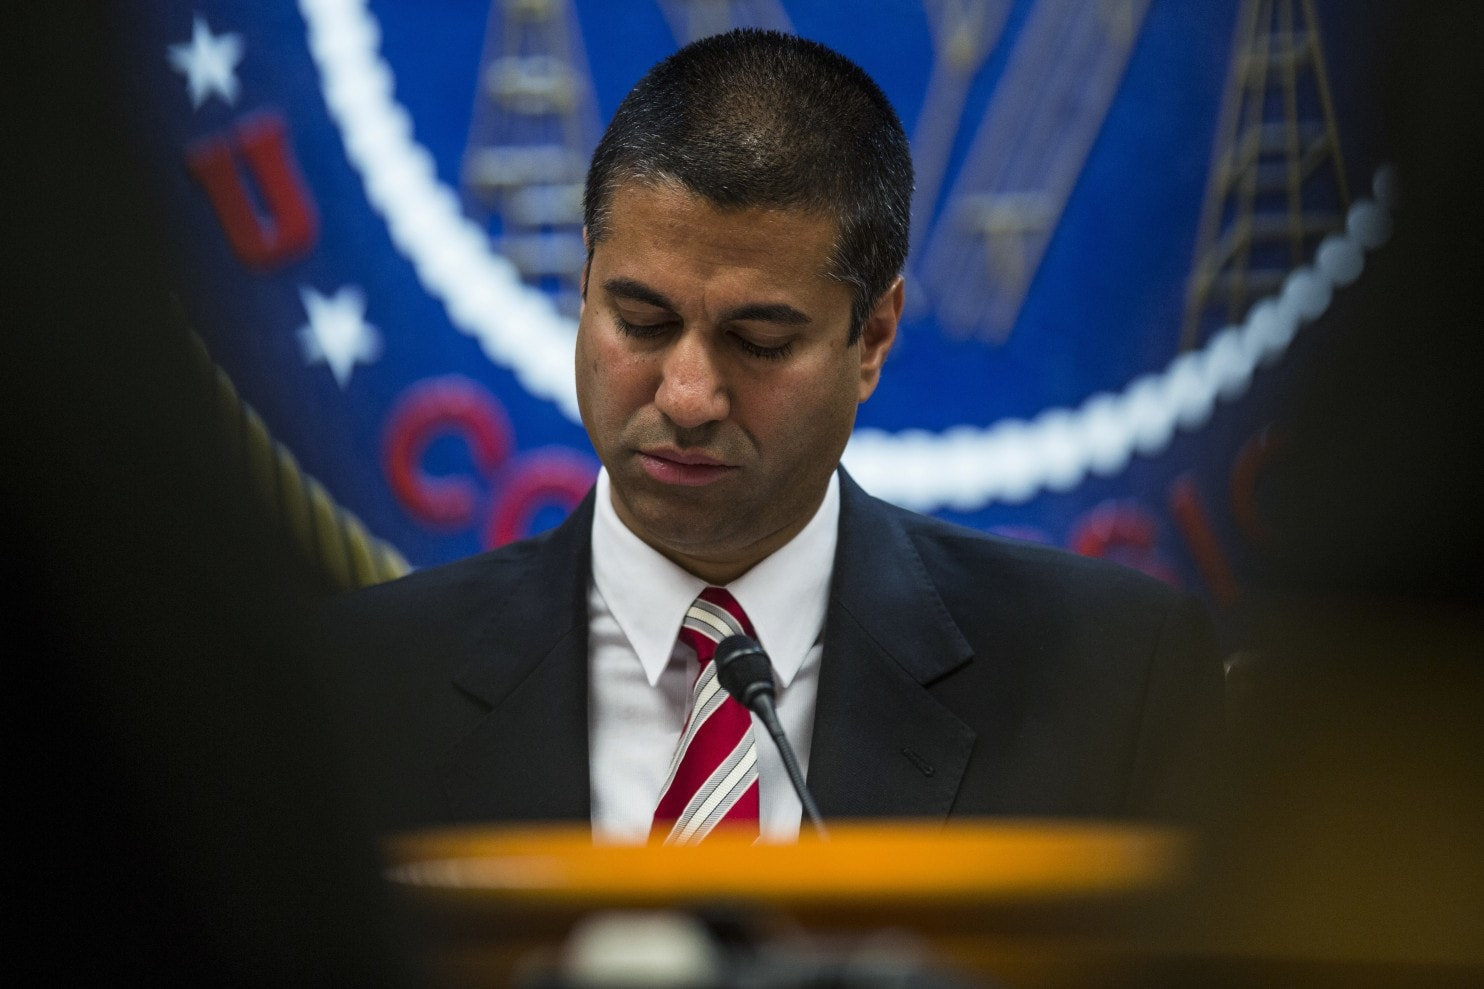 America's FCC once again take aim at net neutrality